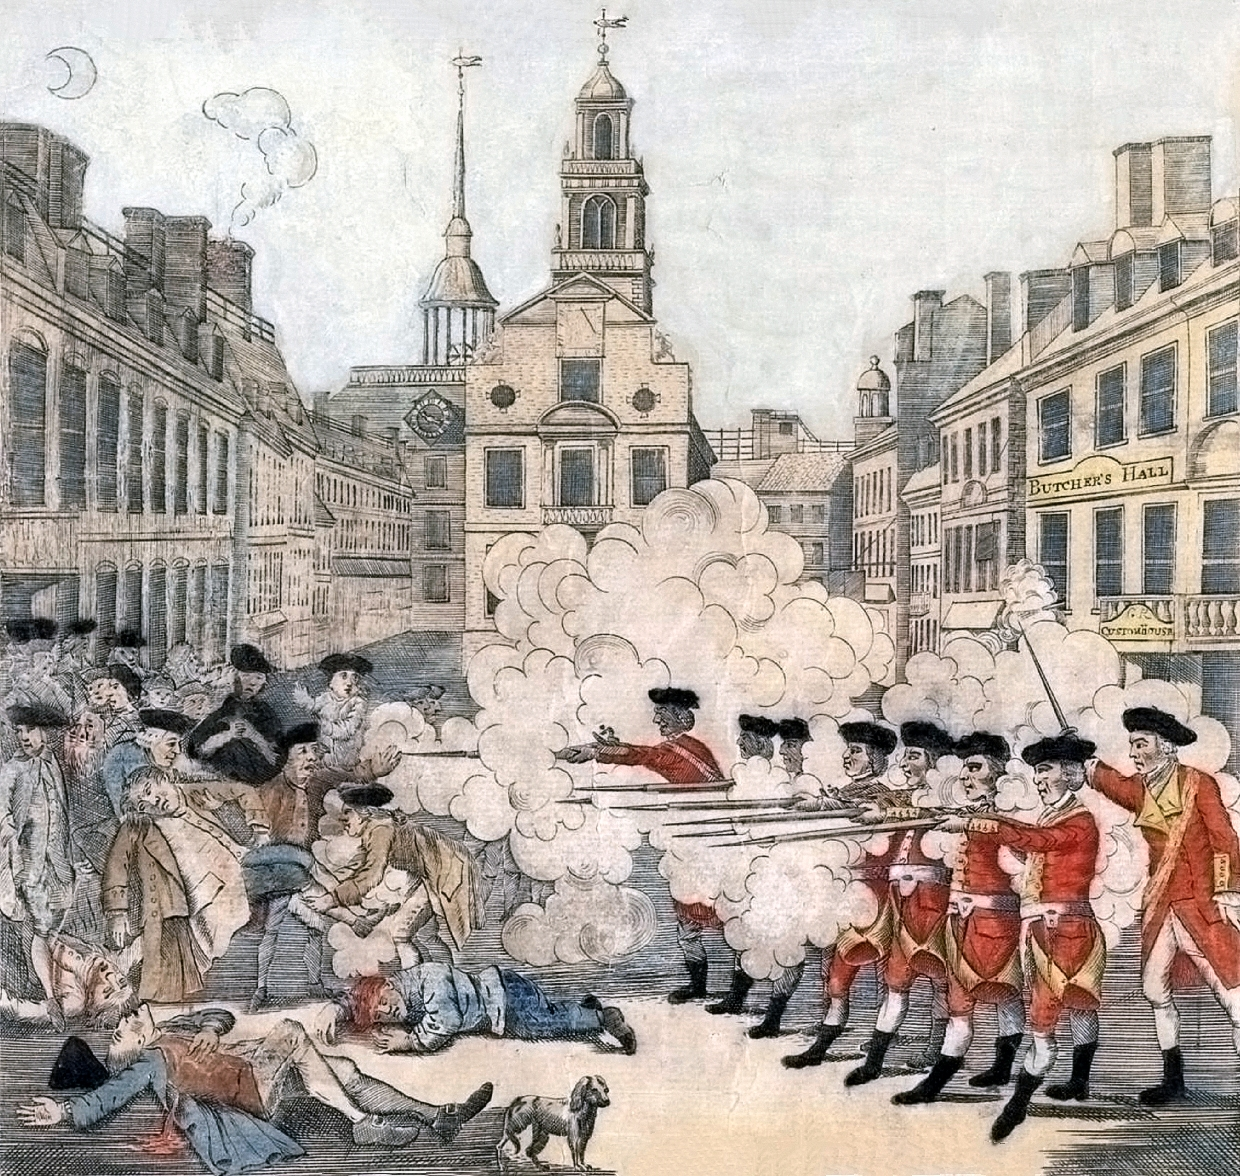 a brief history of the boston massacre in the united states Fueled by propaganda, some believed that it was another, brazen kick in the teeth from the british government to the people in the colonies many british saw it as villainous boston rioters that aimed to attack a legitimate group of soldiers based on their distaste for existing british law among the crowd that night was 19-year-old henry knox.